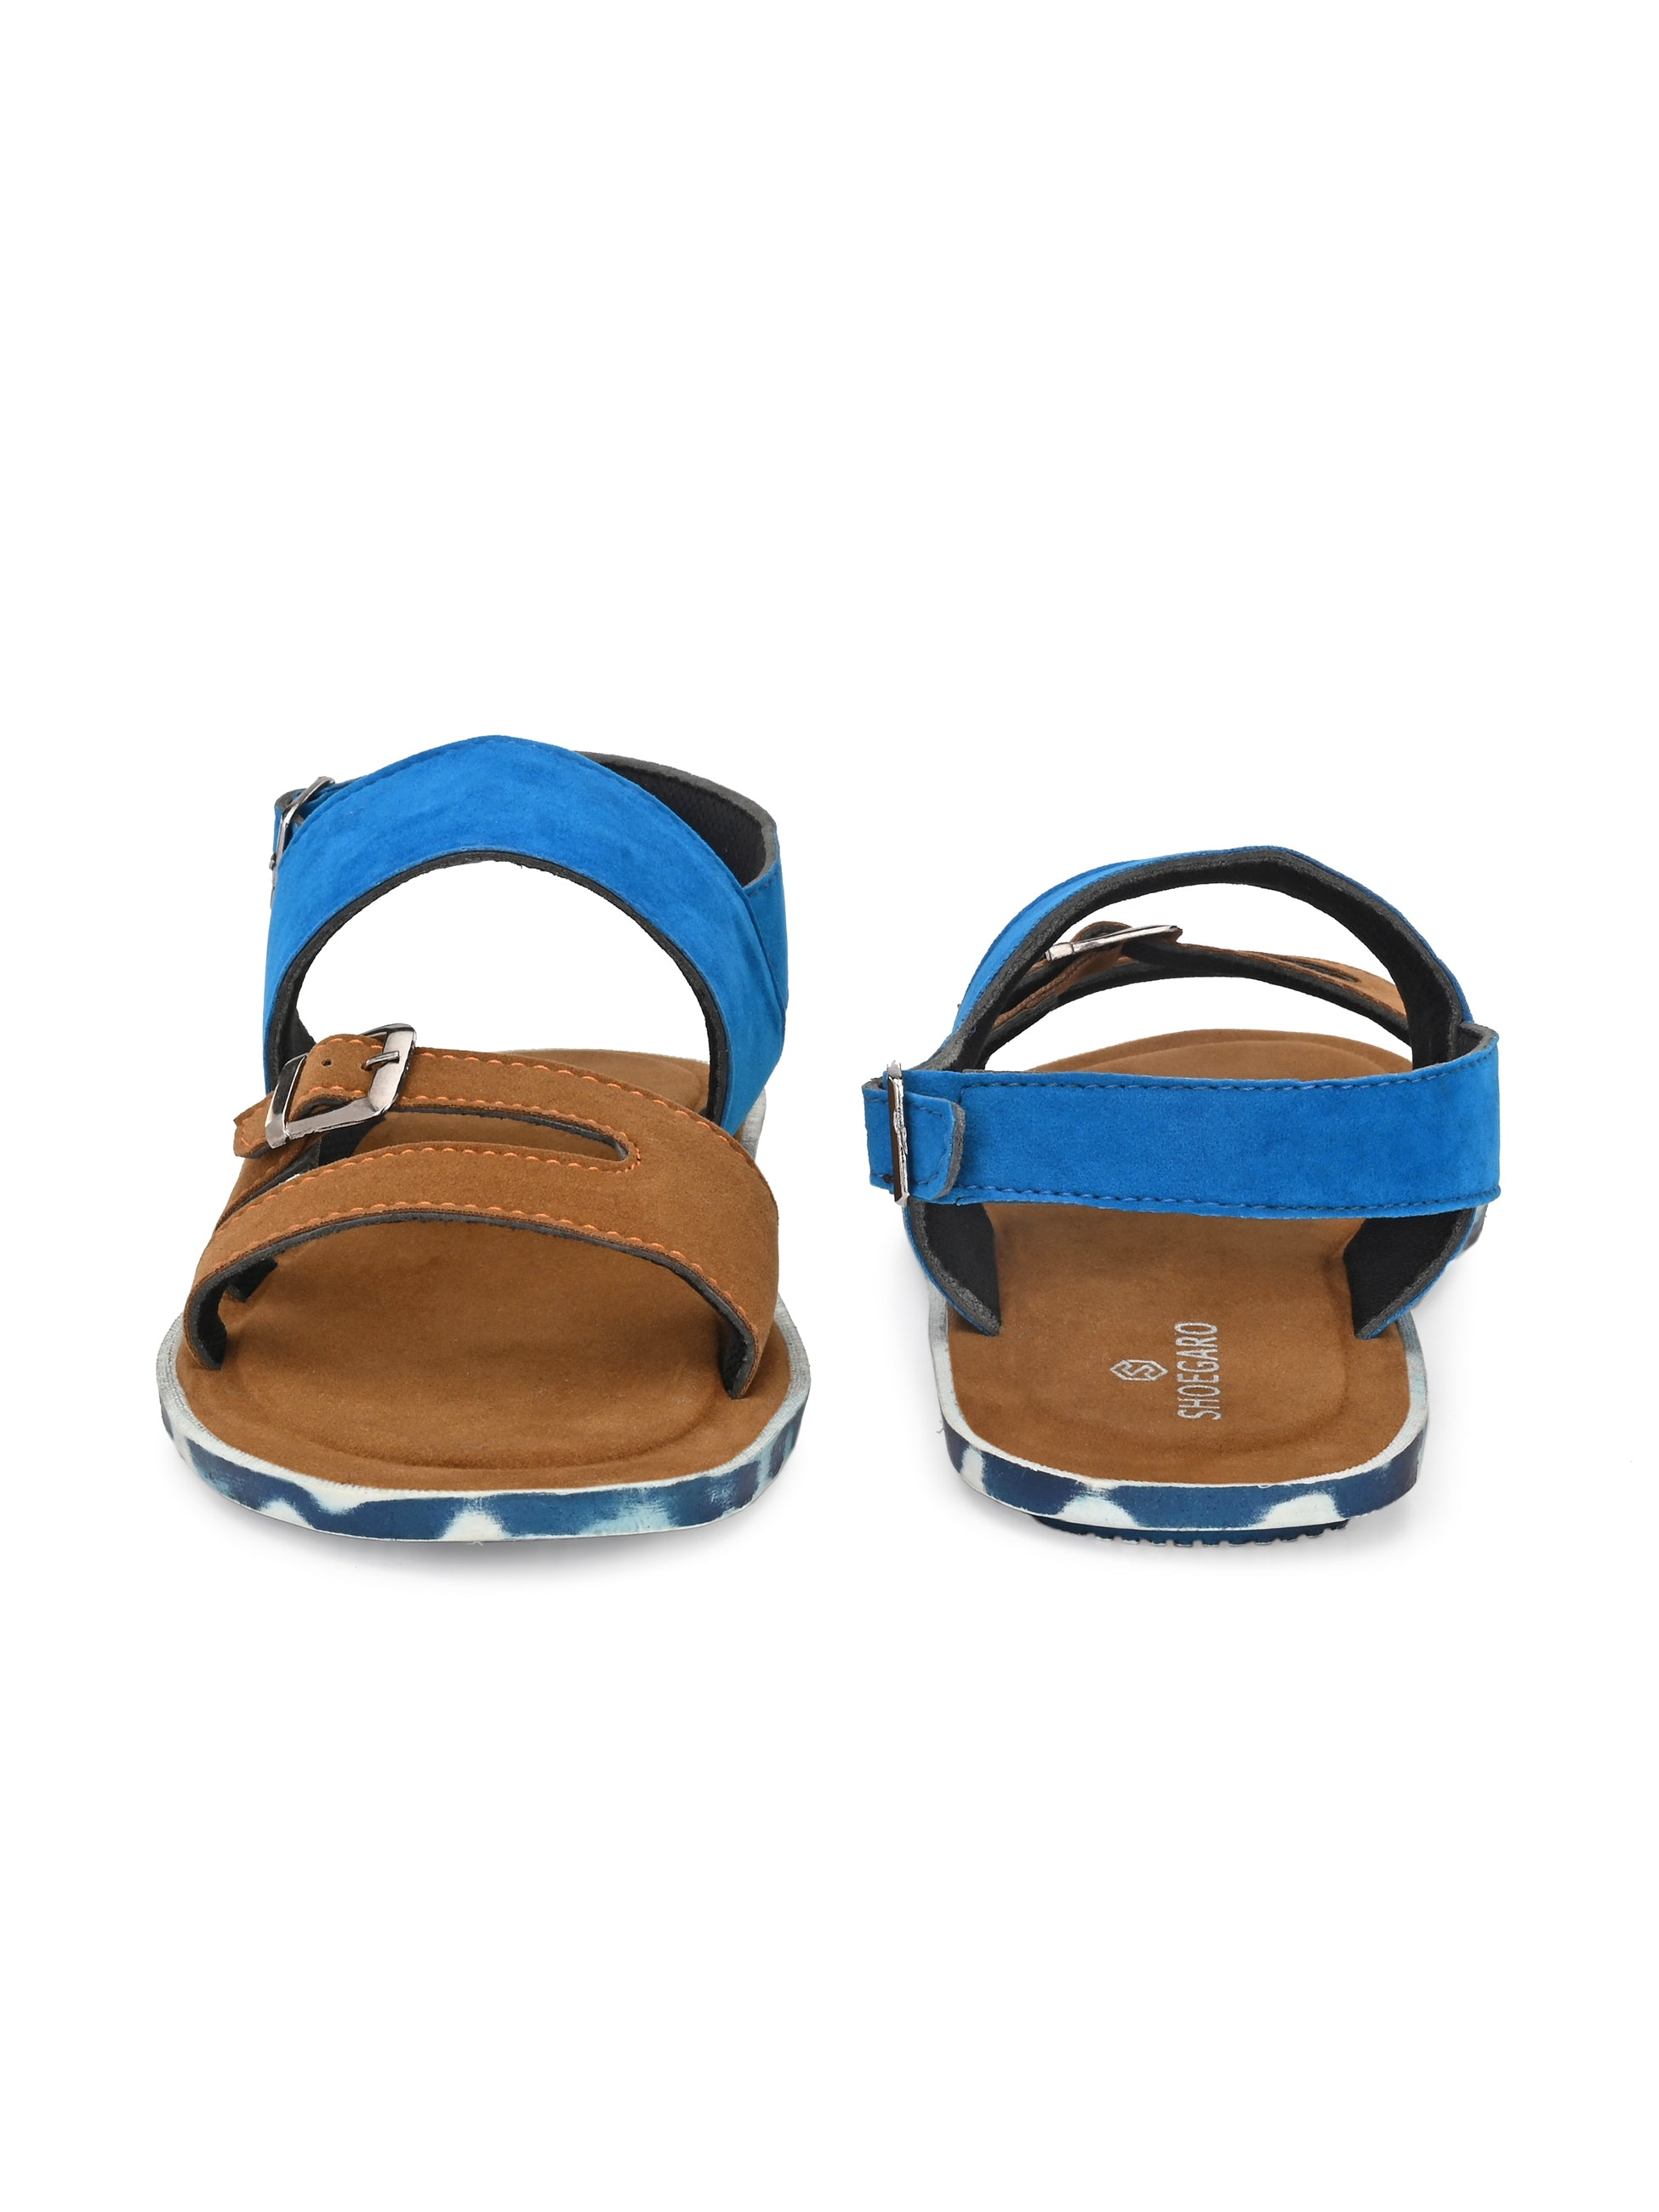 Bichrome Blue Trendy Sandal - shoegaro